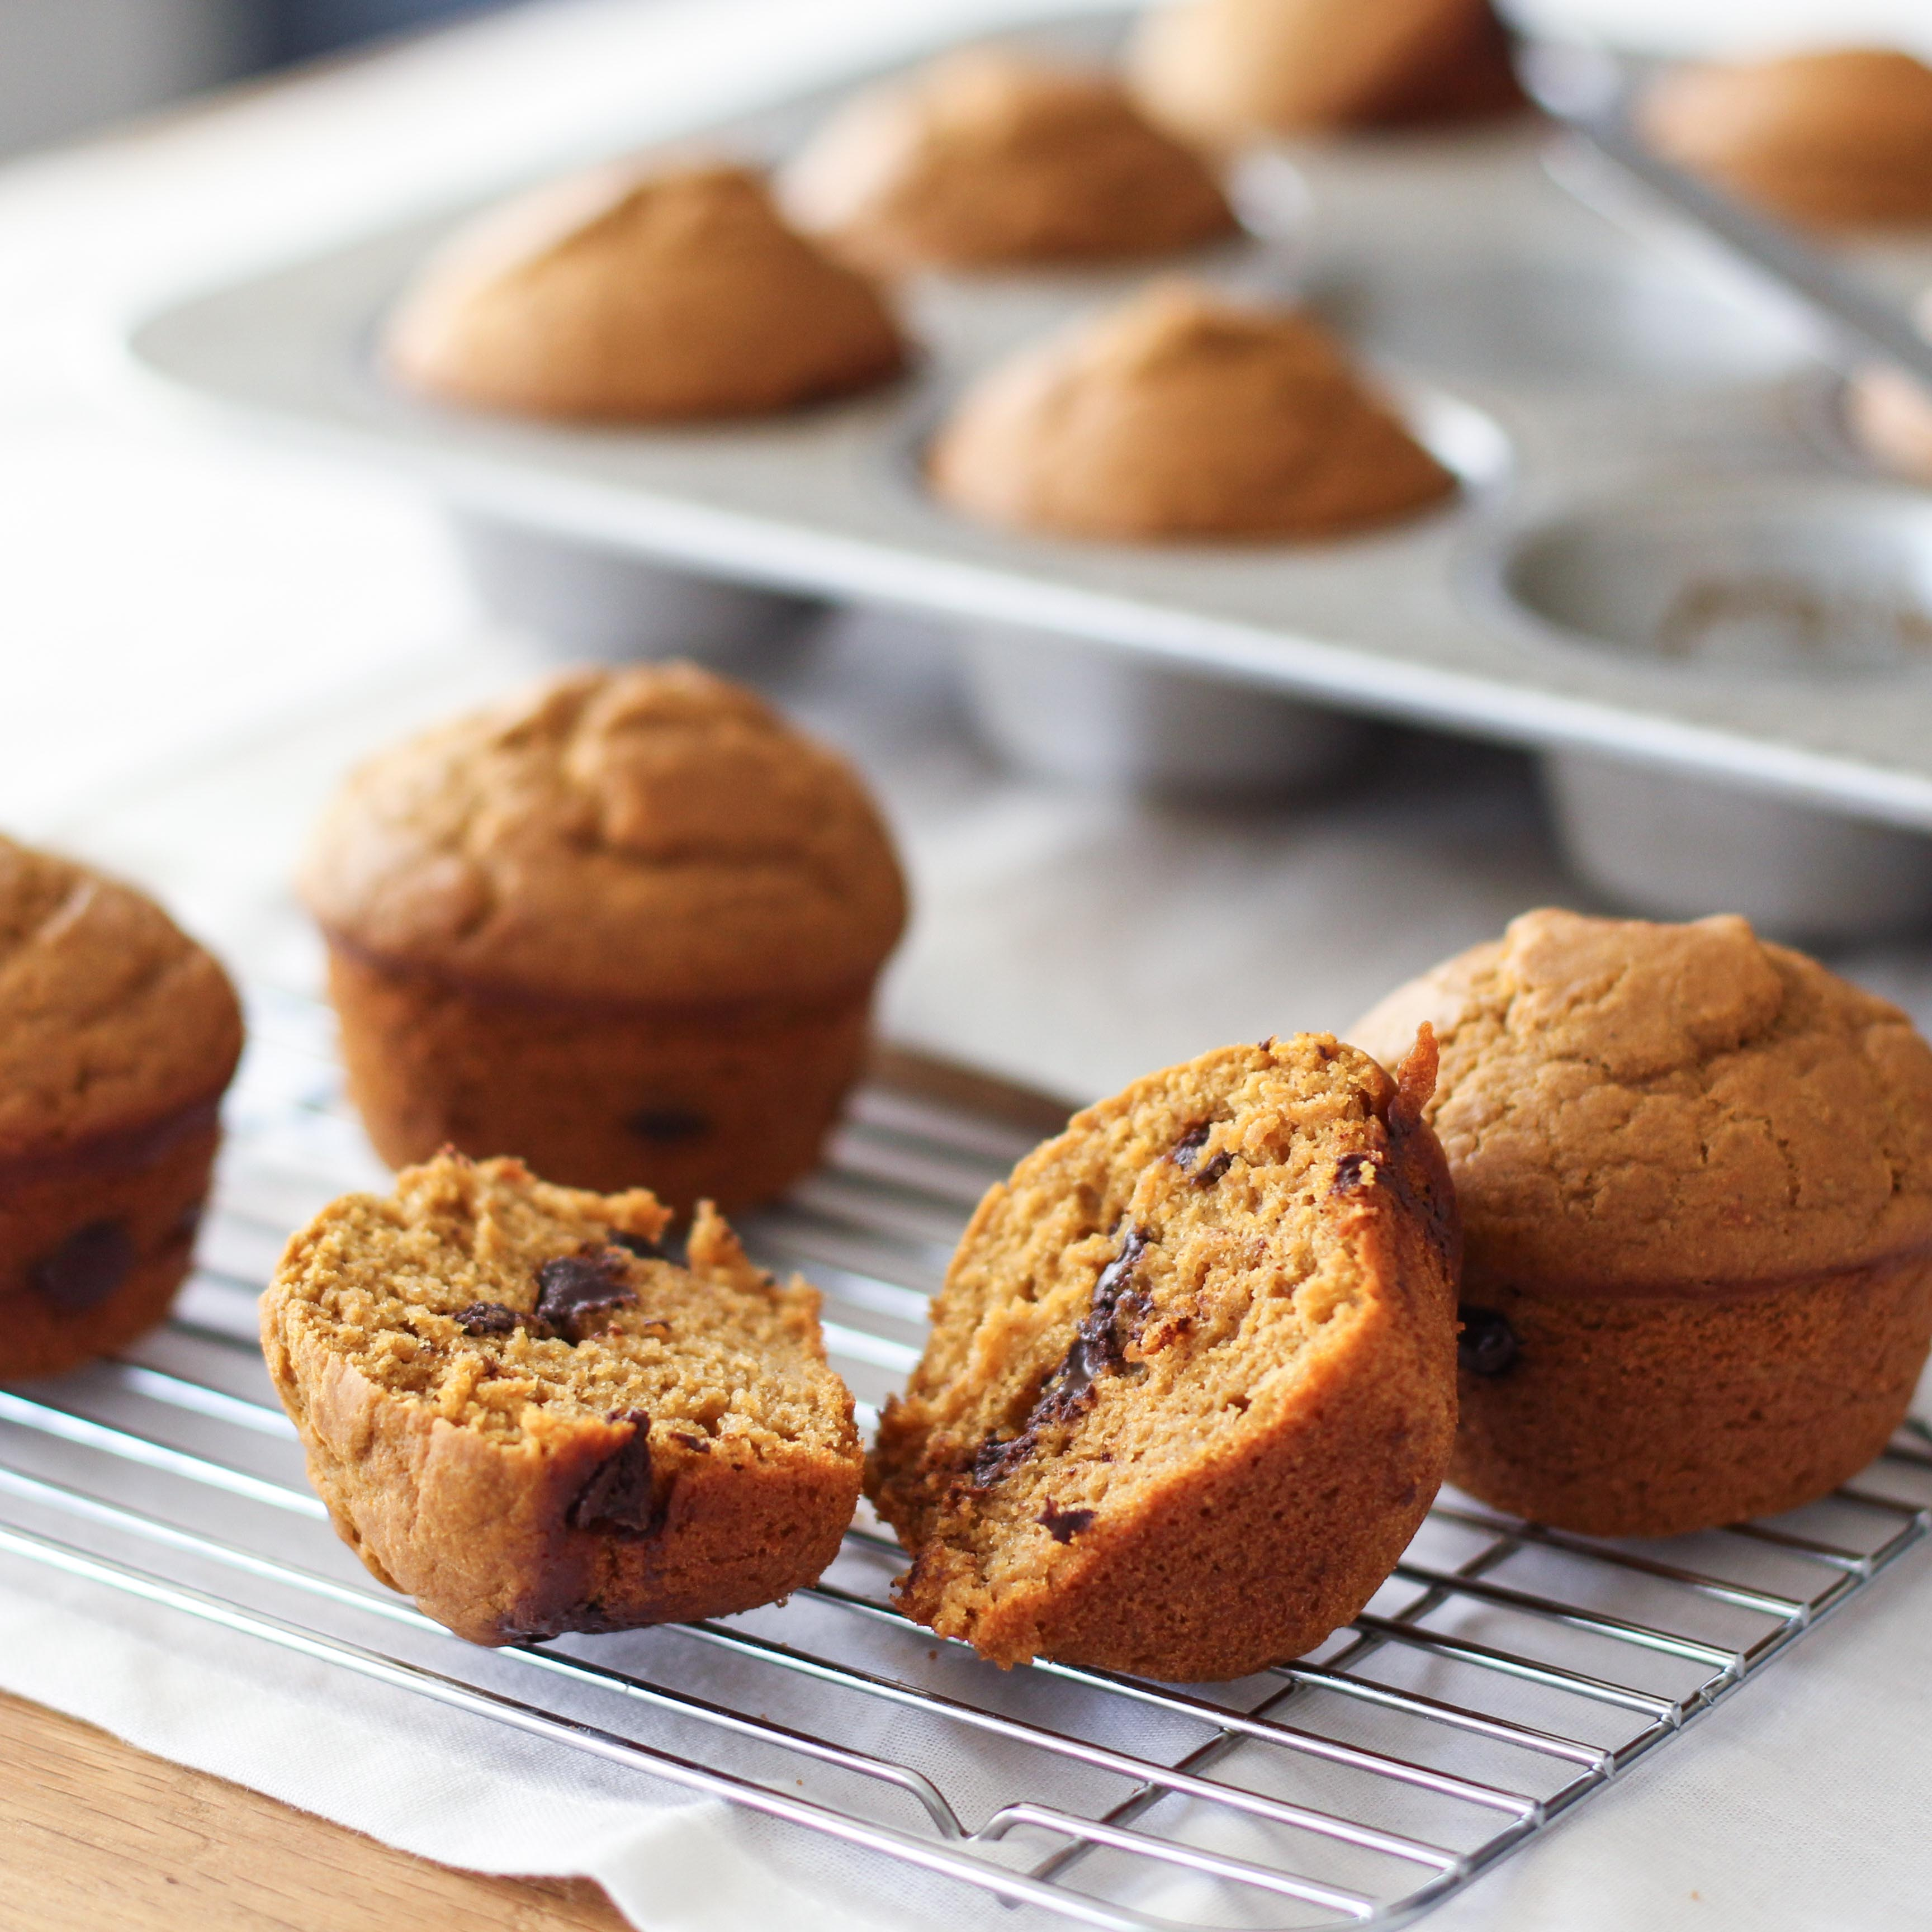 <p>Chocolate accents the pumpkin flavor of these muffins while prune concentrate enhances caramelization while also allowing for lower fat and sugar levels. </p>